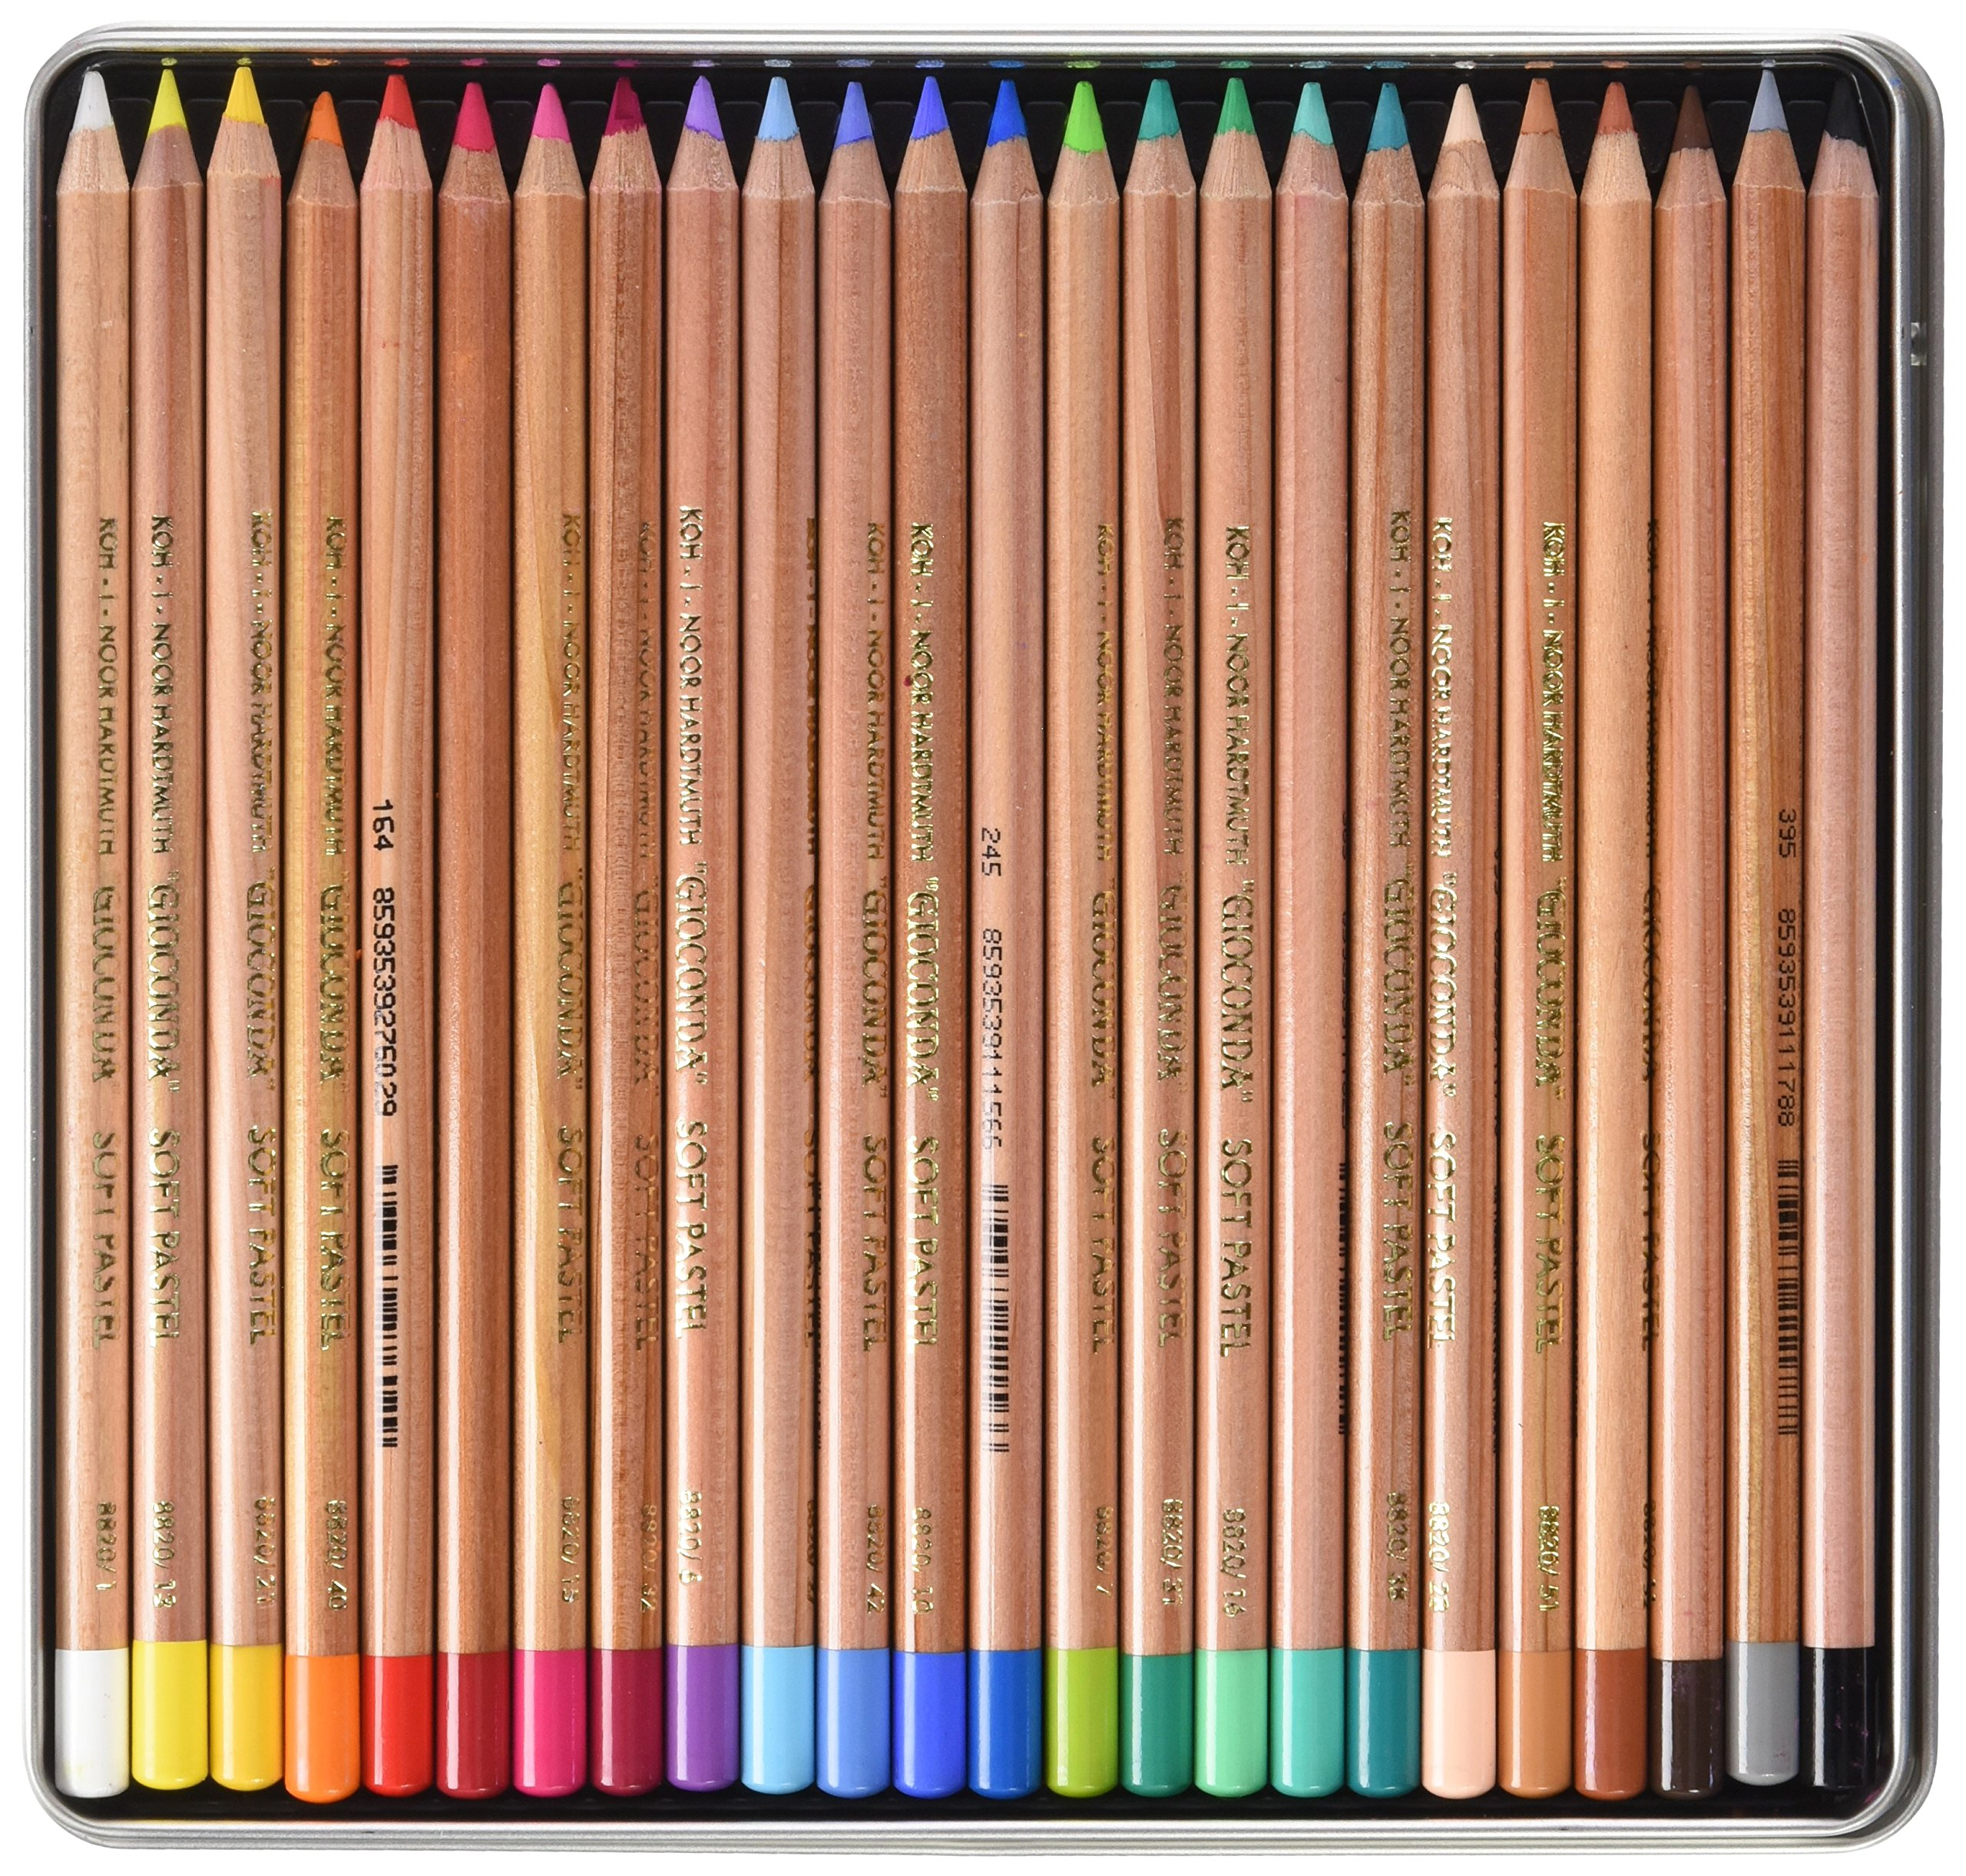 Koh-i-noor Gioconda Soft Pastel Pencils, 24 Assorted by Chartpak